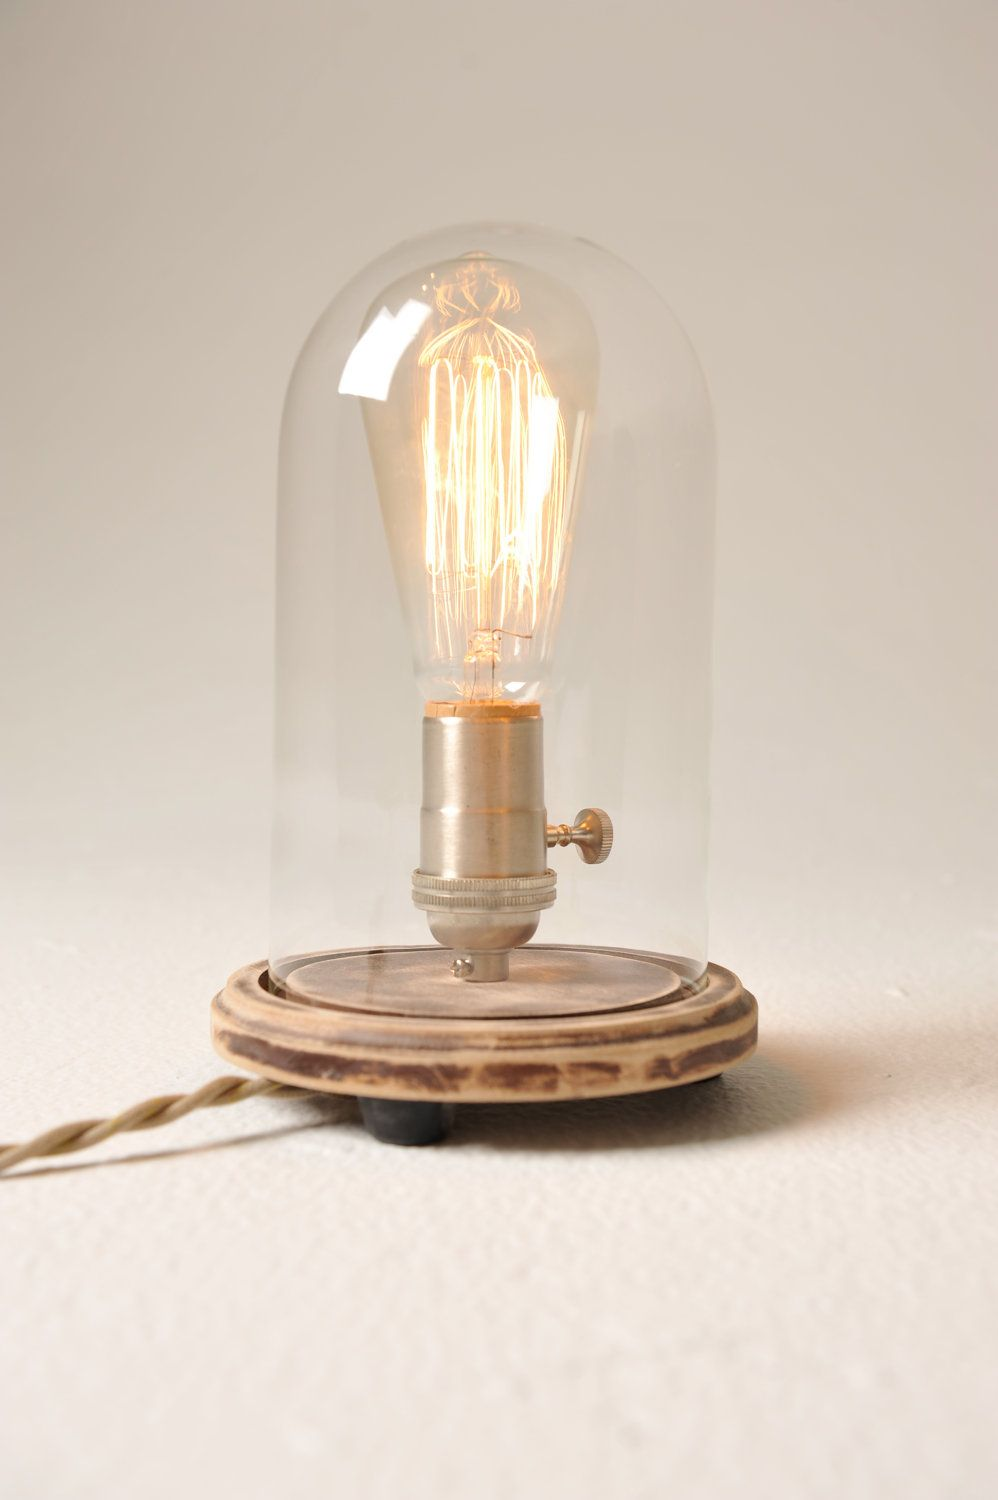 The Original Bell Jar Table Lamp Includes Edison Bulb 135 00 Via Etsy Jar Table Lamp Lamp Table Lamp